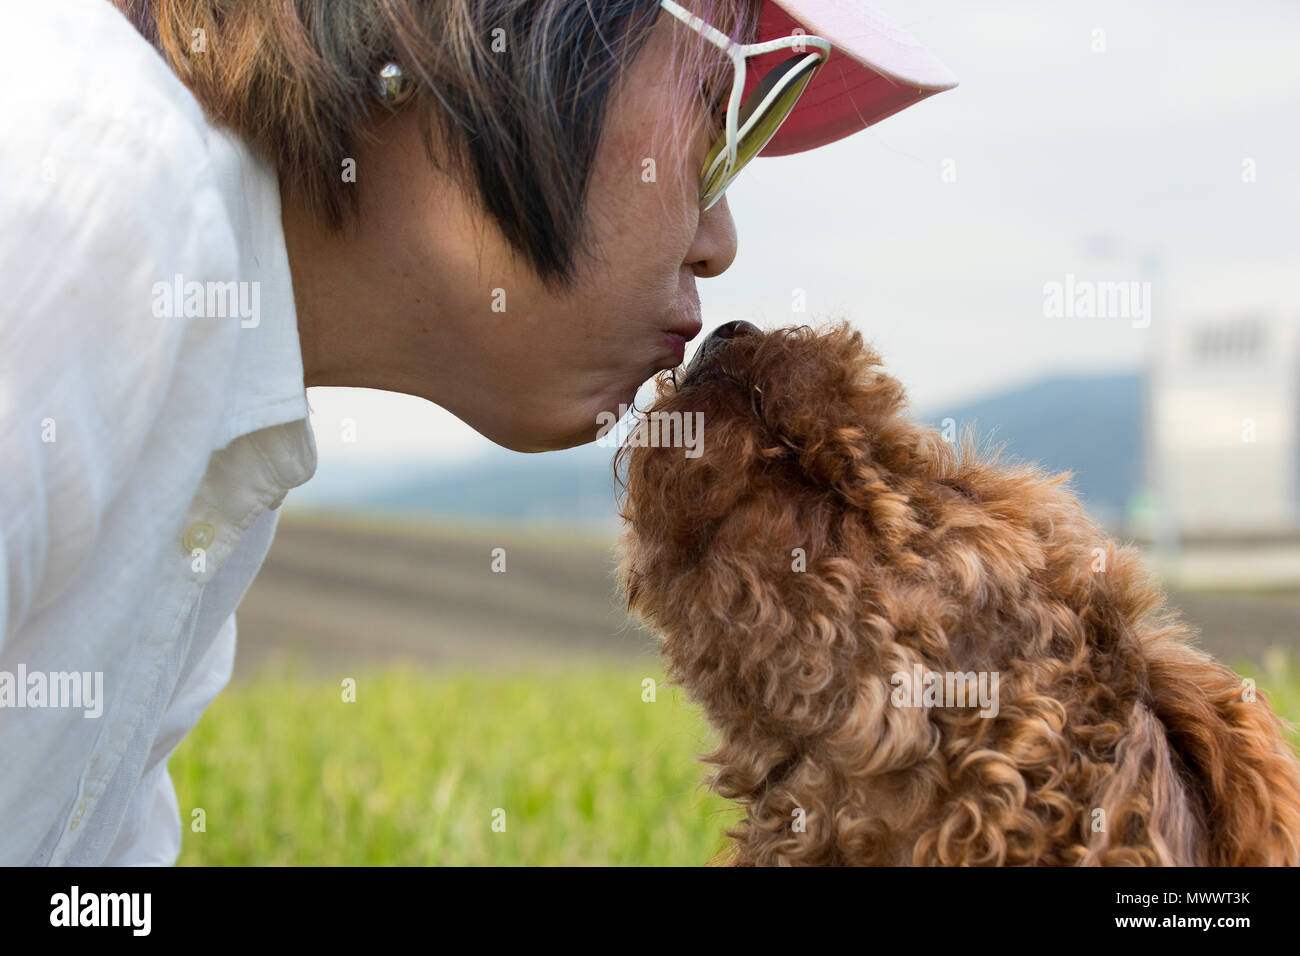 Close up of chocolate brown poodle giving its owner, a Taiwanese woman of Chinese descent, a kiss - Stock Image